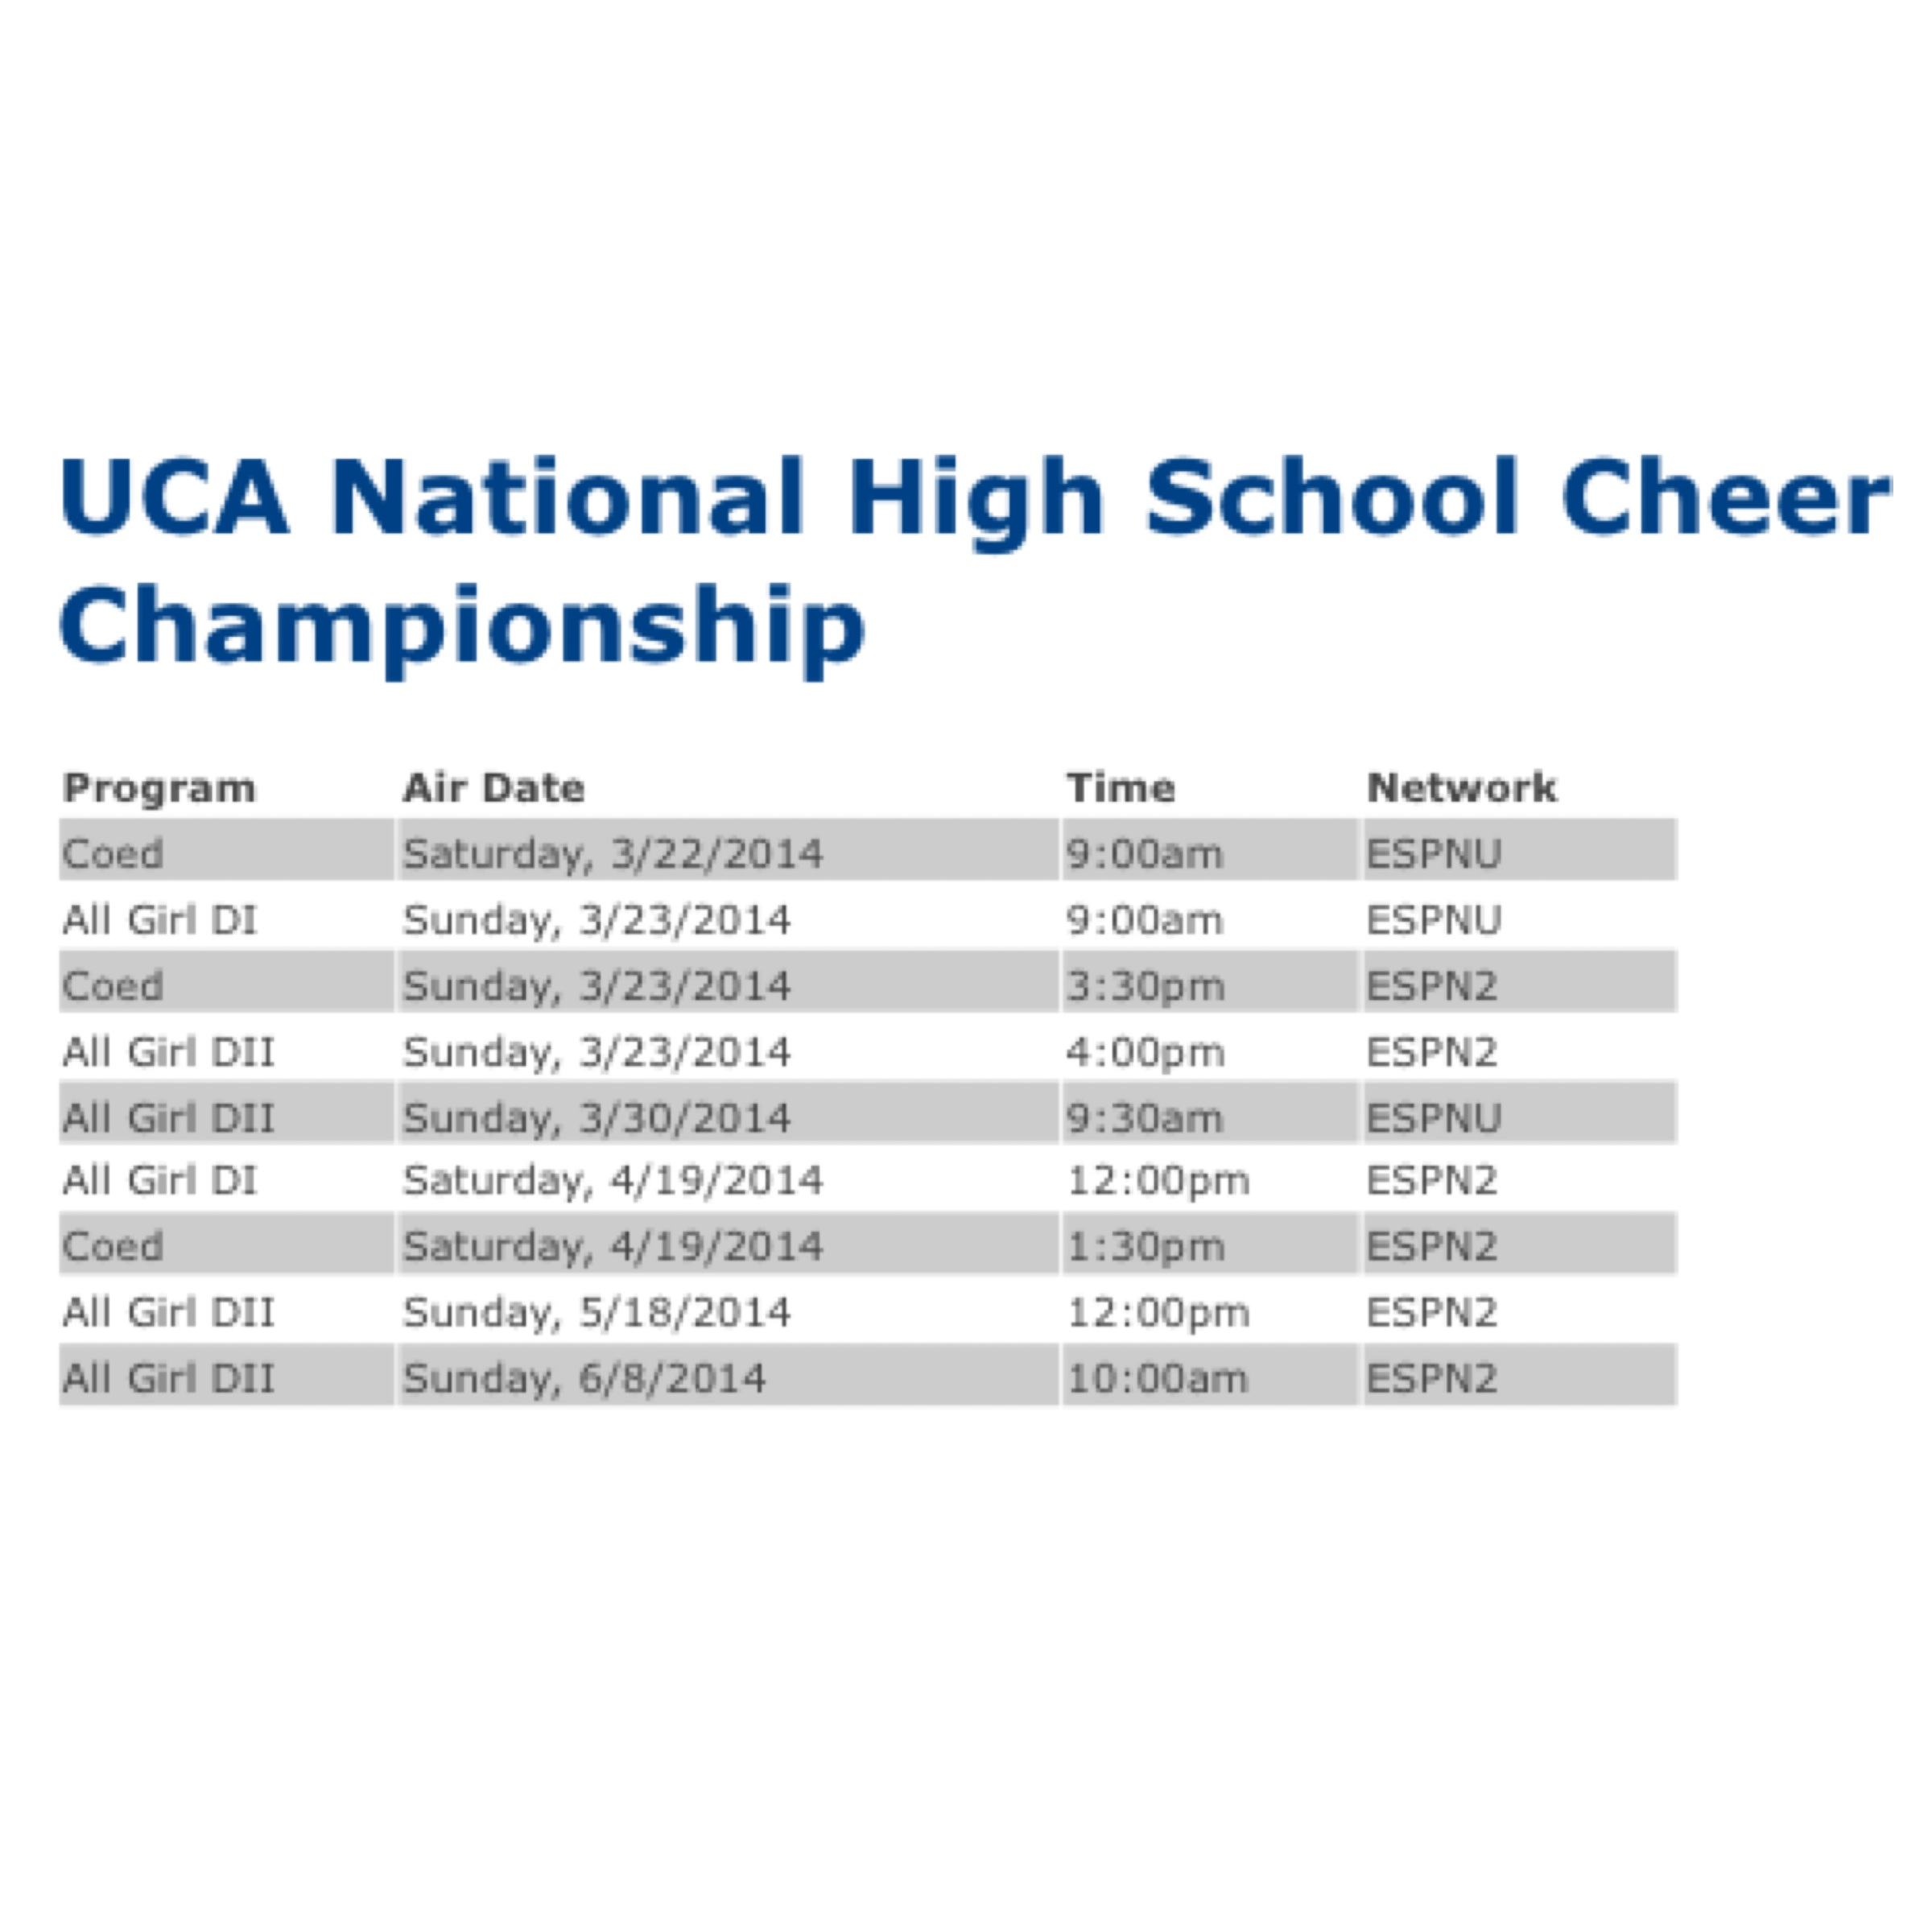 UCA NHSCC air dates